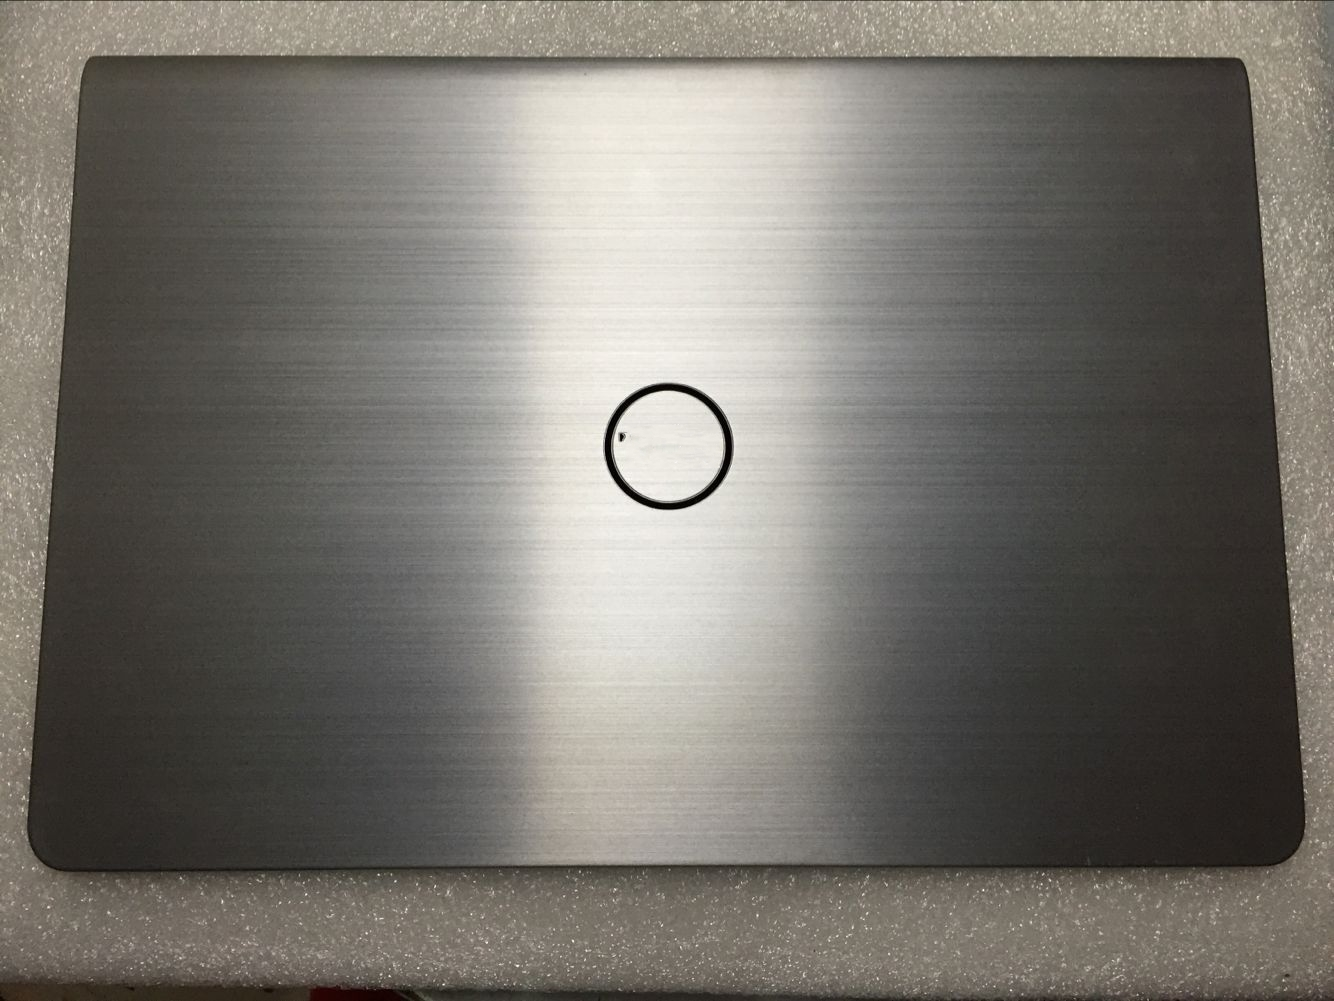 """Free shipping New for Dell Inspiron 15 5547 series 15.6"""" Original Silver LCD Back Cover Top Case 3VXXW 03VXXW with hinges"""